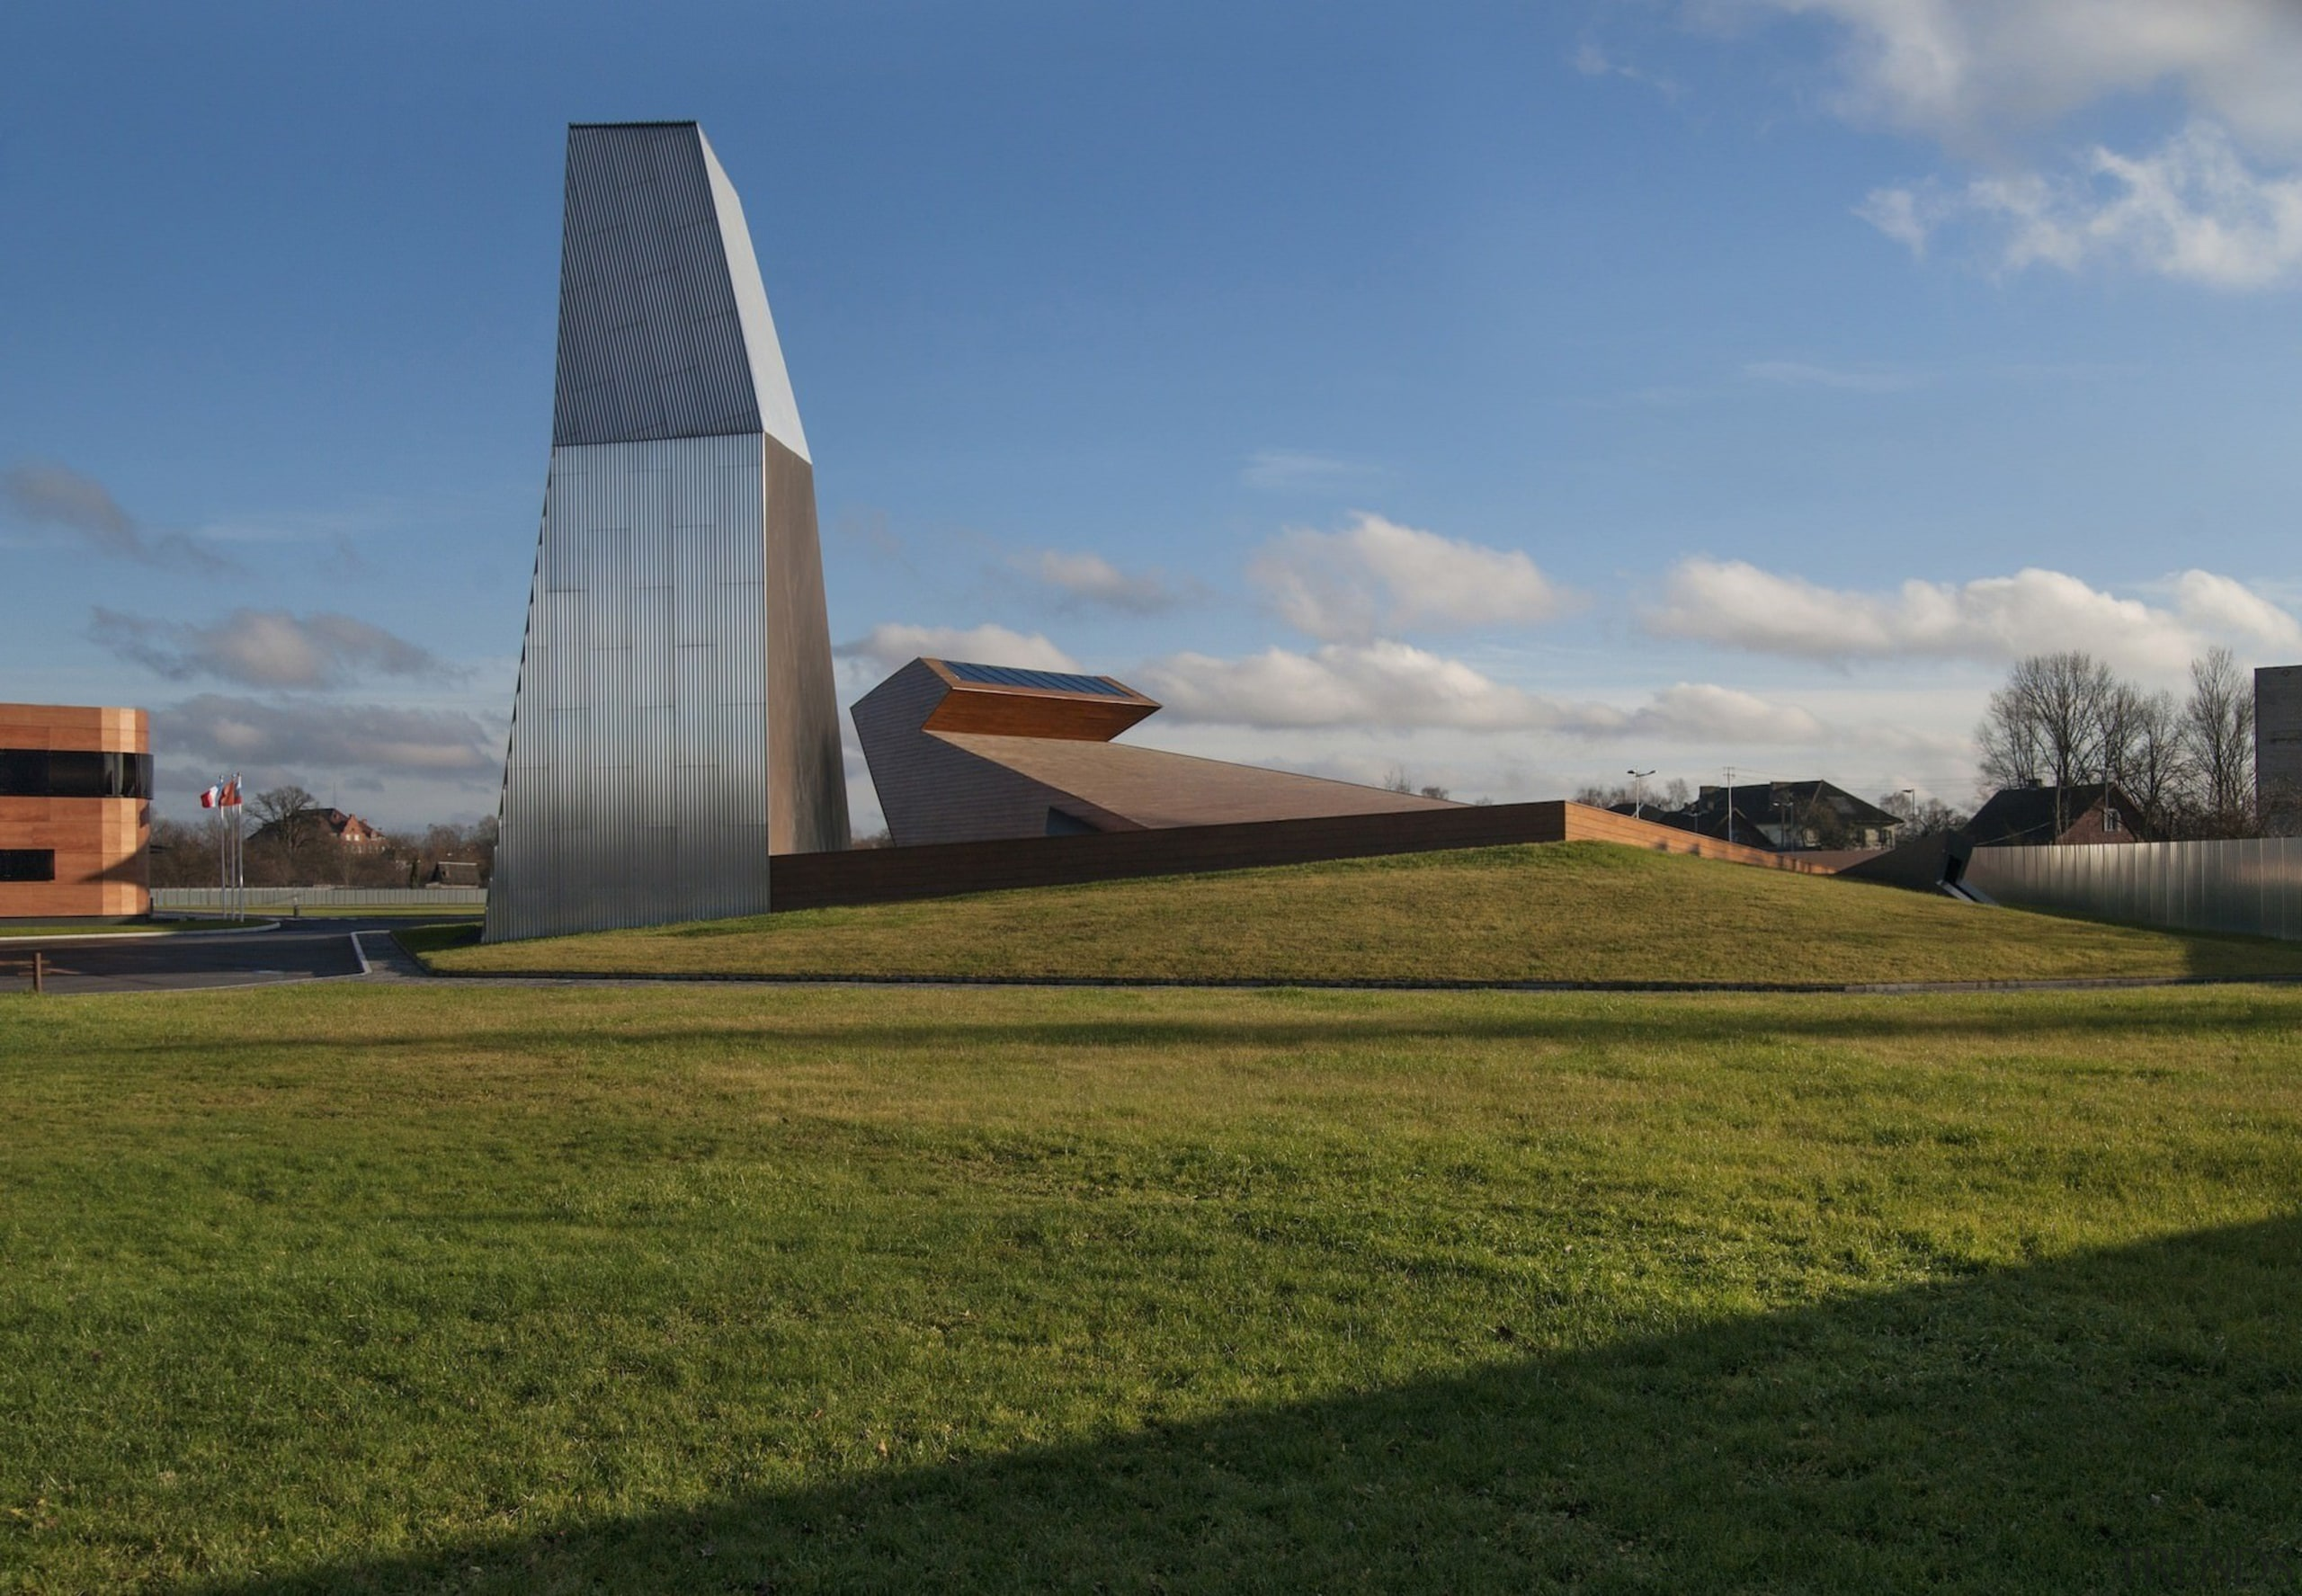 New brandy warehouse by TOTEMENT/PAPER - New brandy architecture, cloud, farm, field, grass, house, plant, rural area, sky, brown